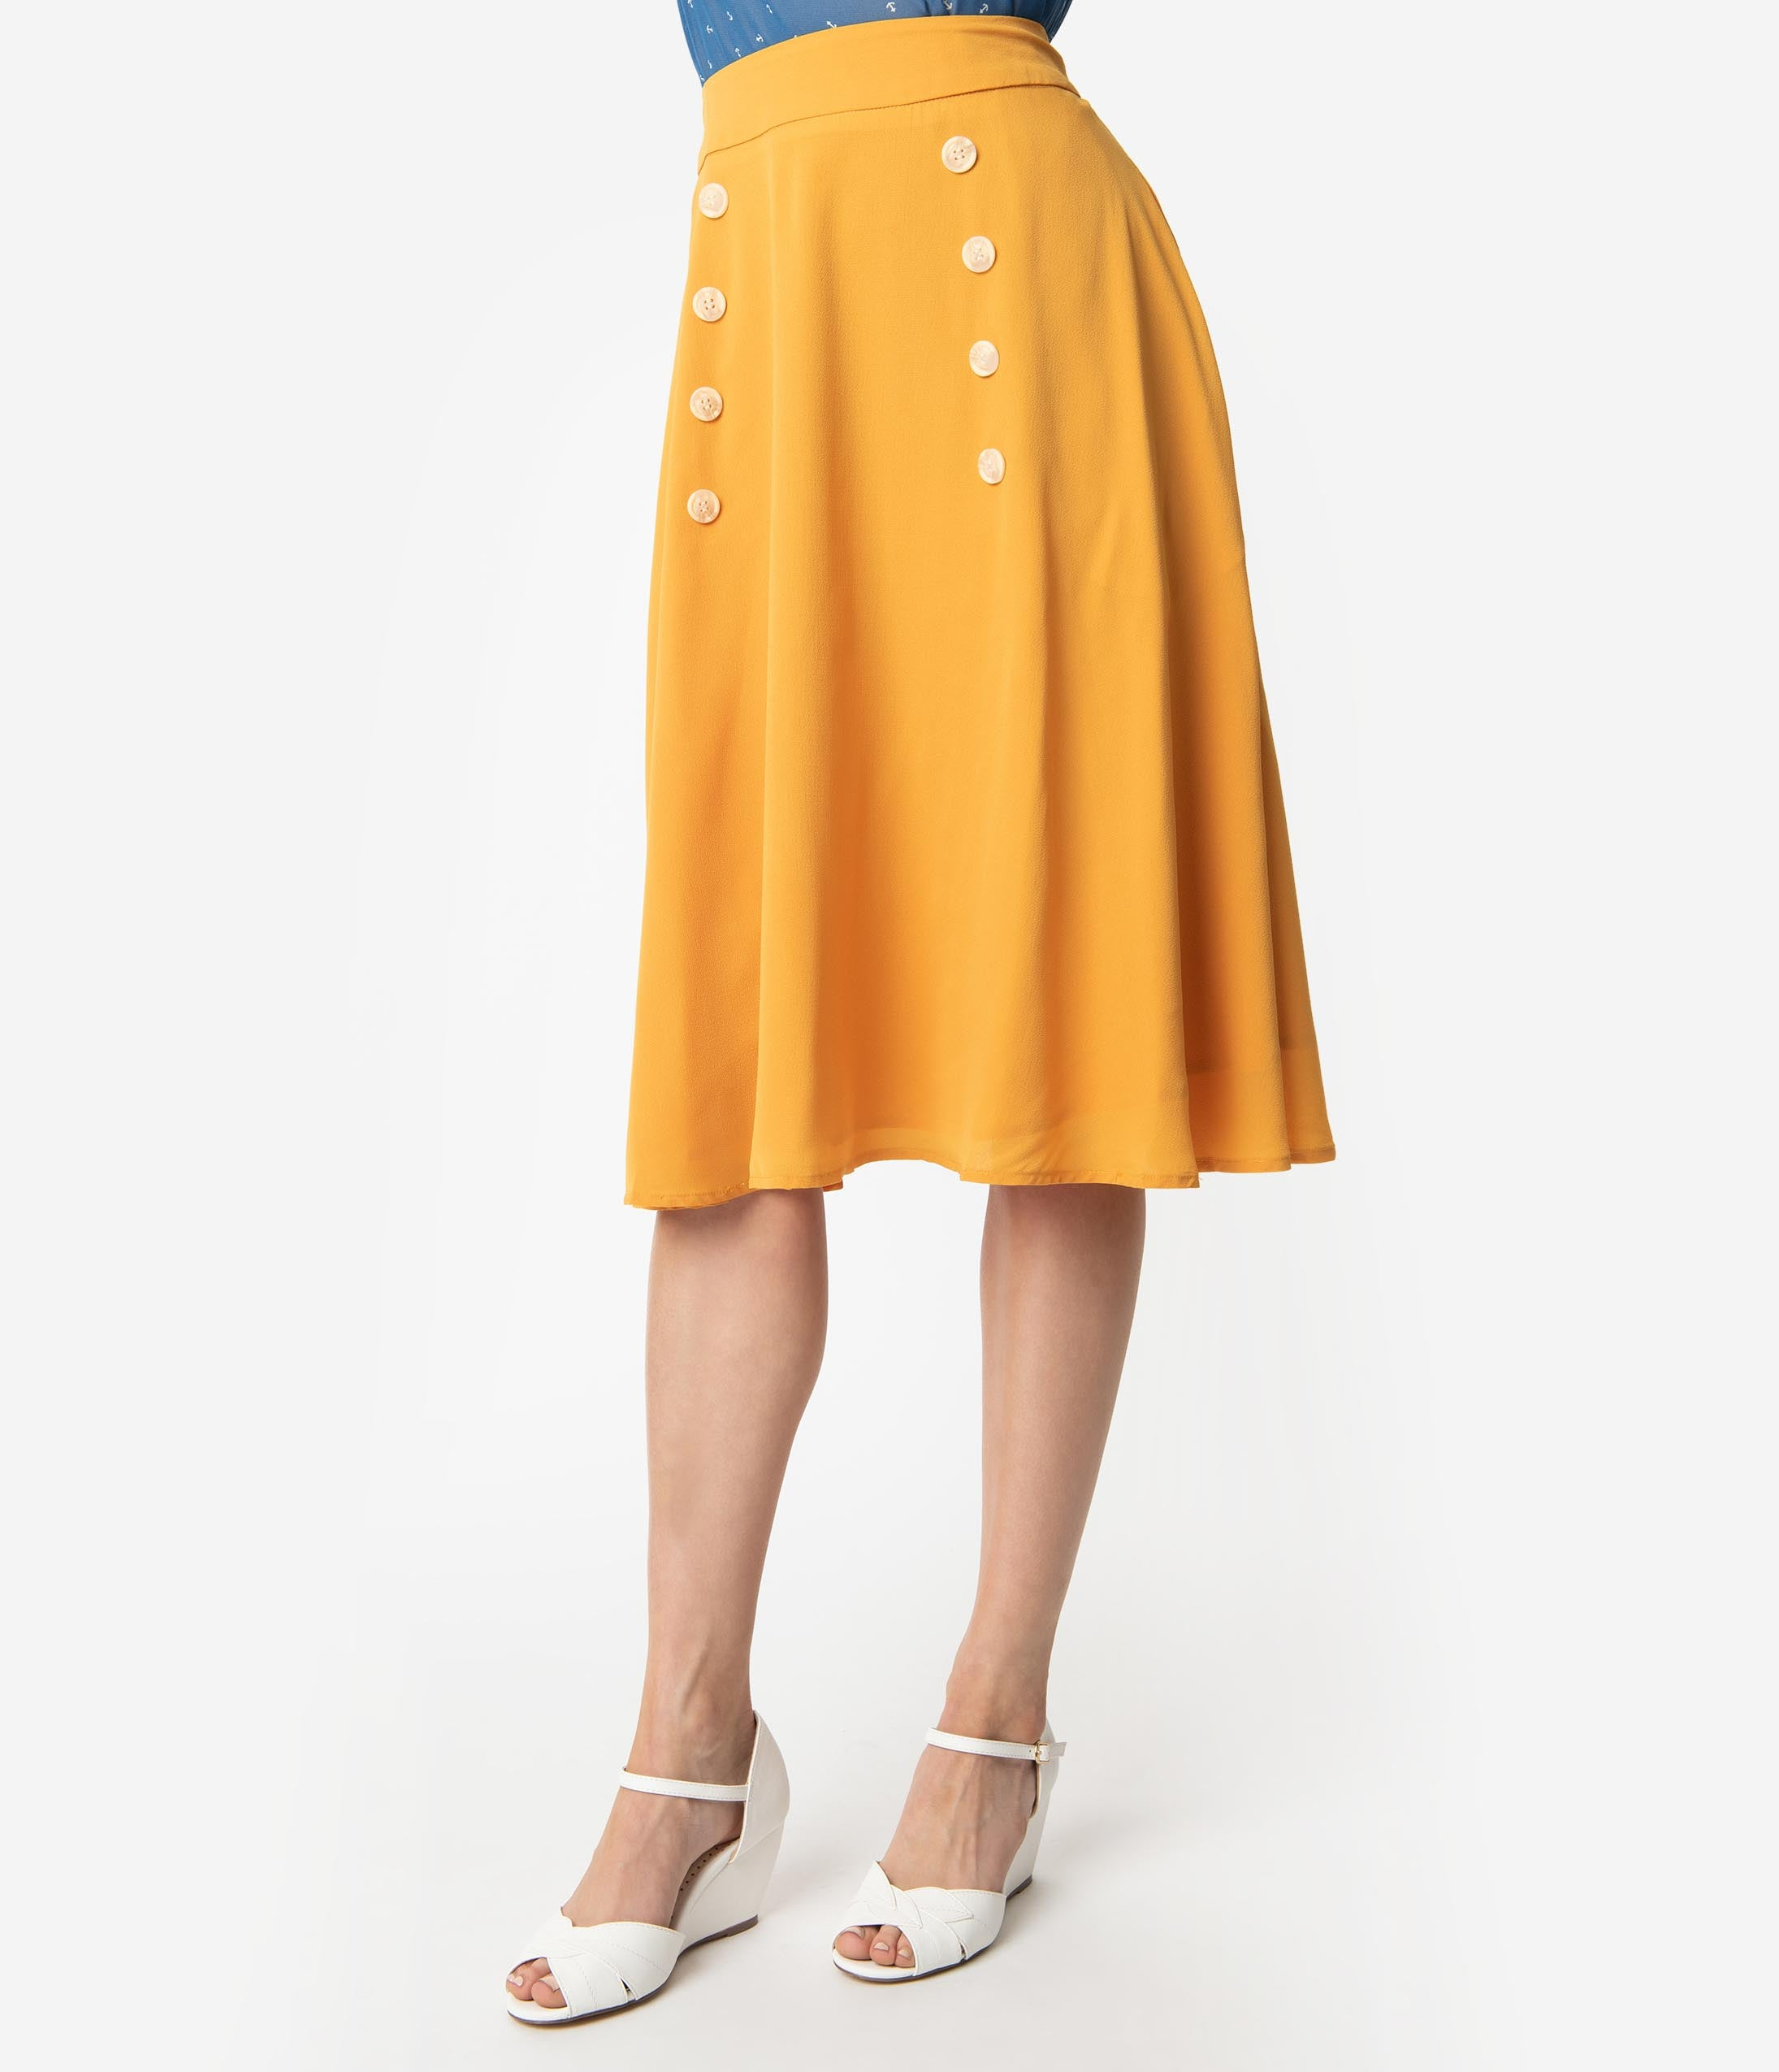 1702d2d7835b27 1950s Style Mustard Yellow Crepe Cute As A Button High Waist Swing Skirt.  $48.00. 5 Reviews. Unique Vintage Mint Green & Polka Dot ...